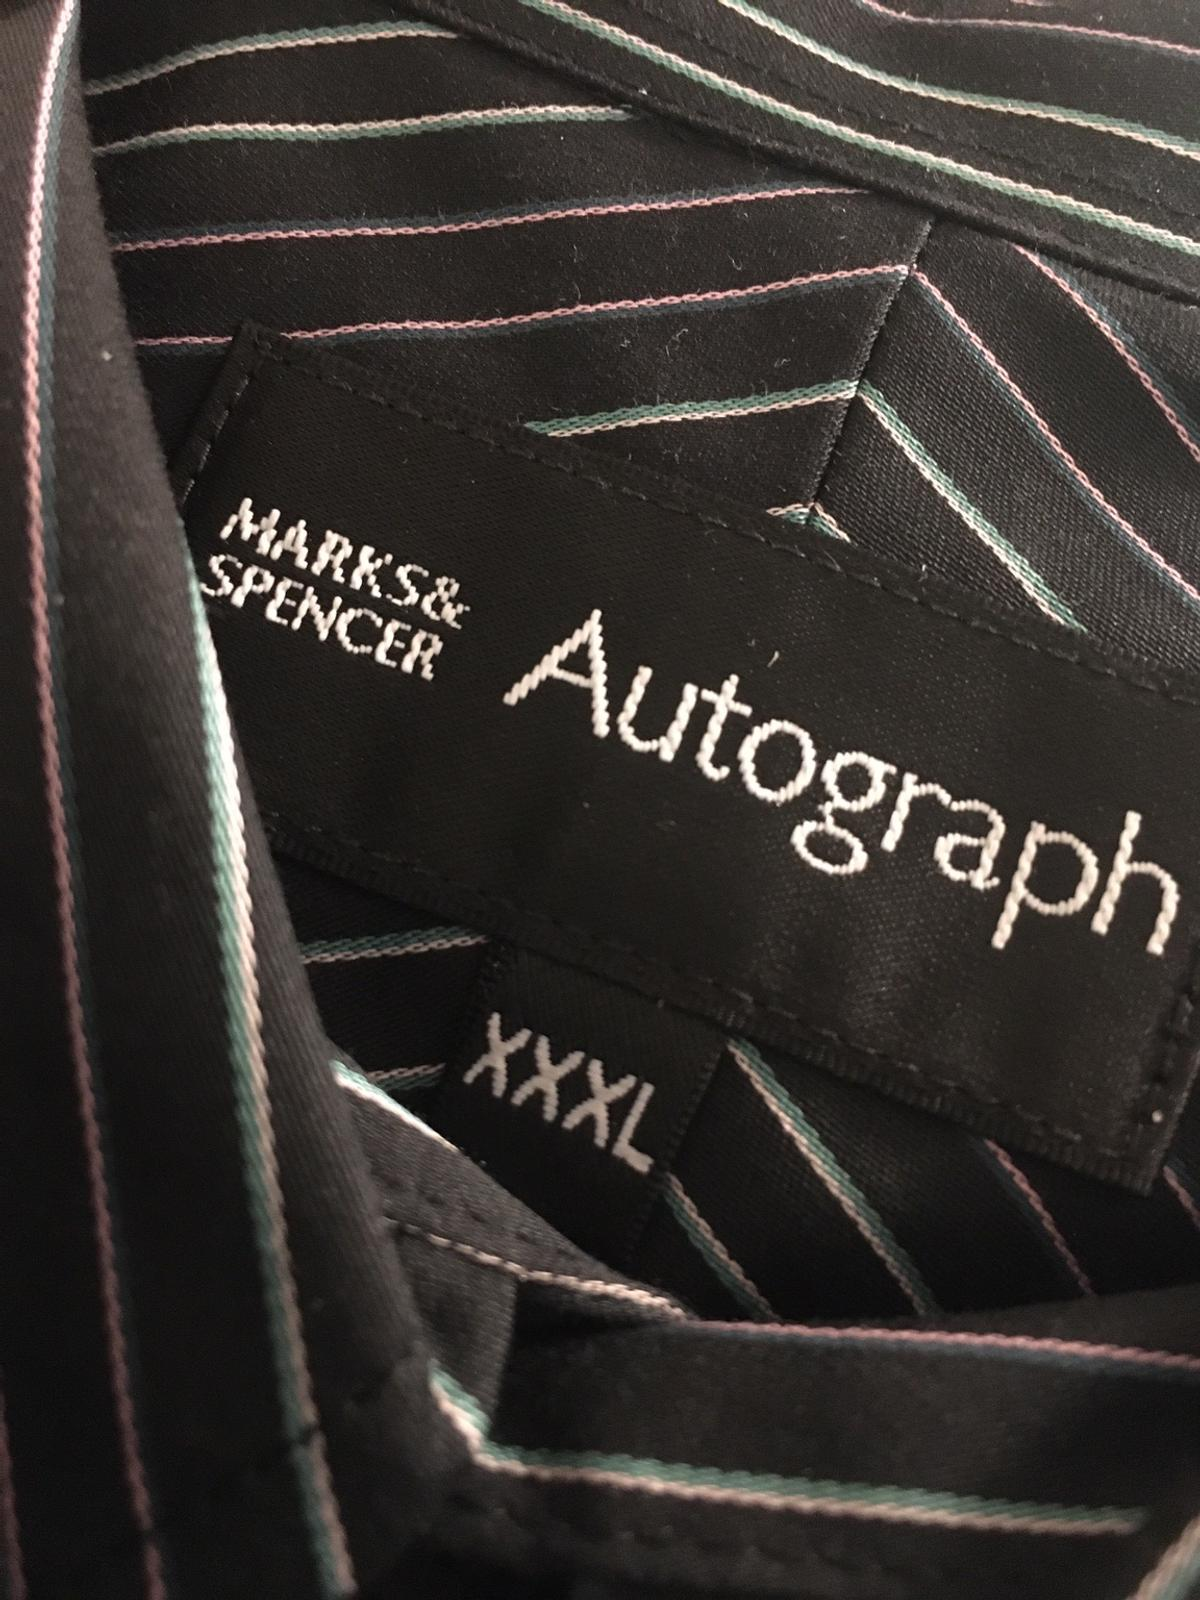 100% Cotton Long Sleeve Autograph Range XXXL Striped Shirt colours: black, white, green and purple Button cuffs To fit Chest 50-52 inches To fit 18.5 inch collar size NEW in packaging with tags attached  RRP £29.50. Selling for £14